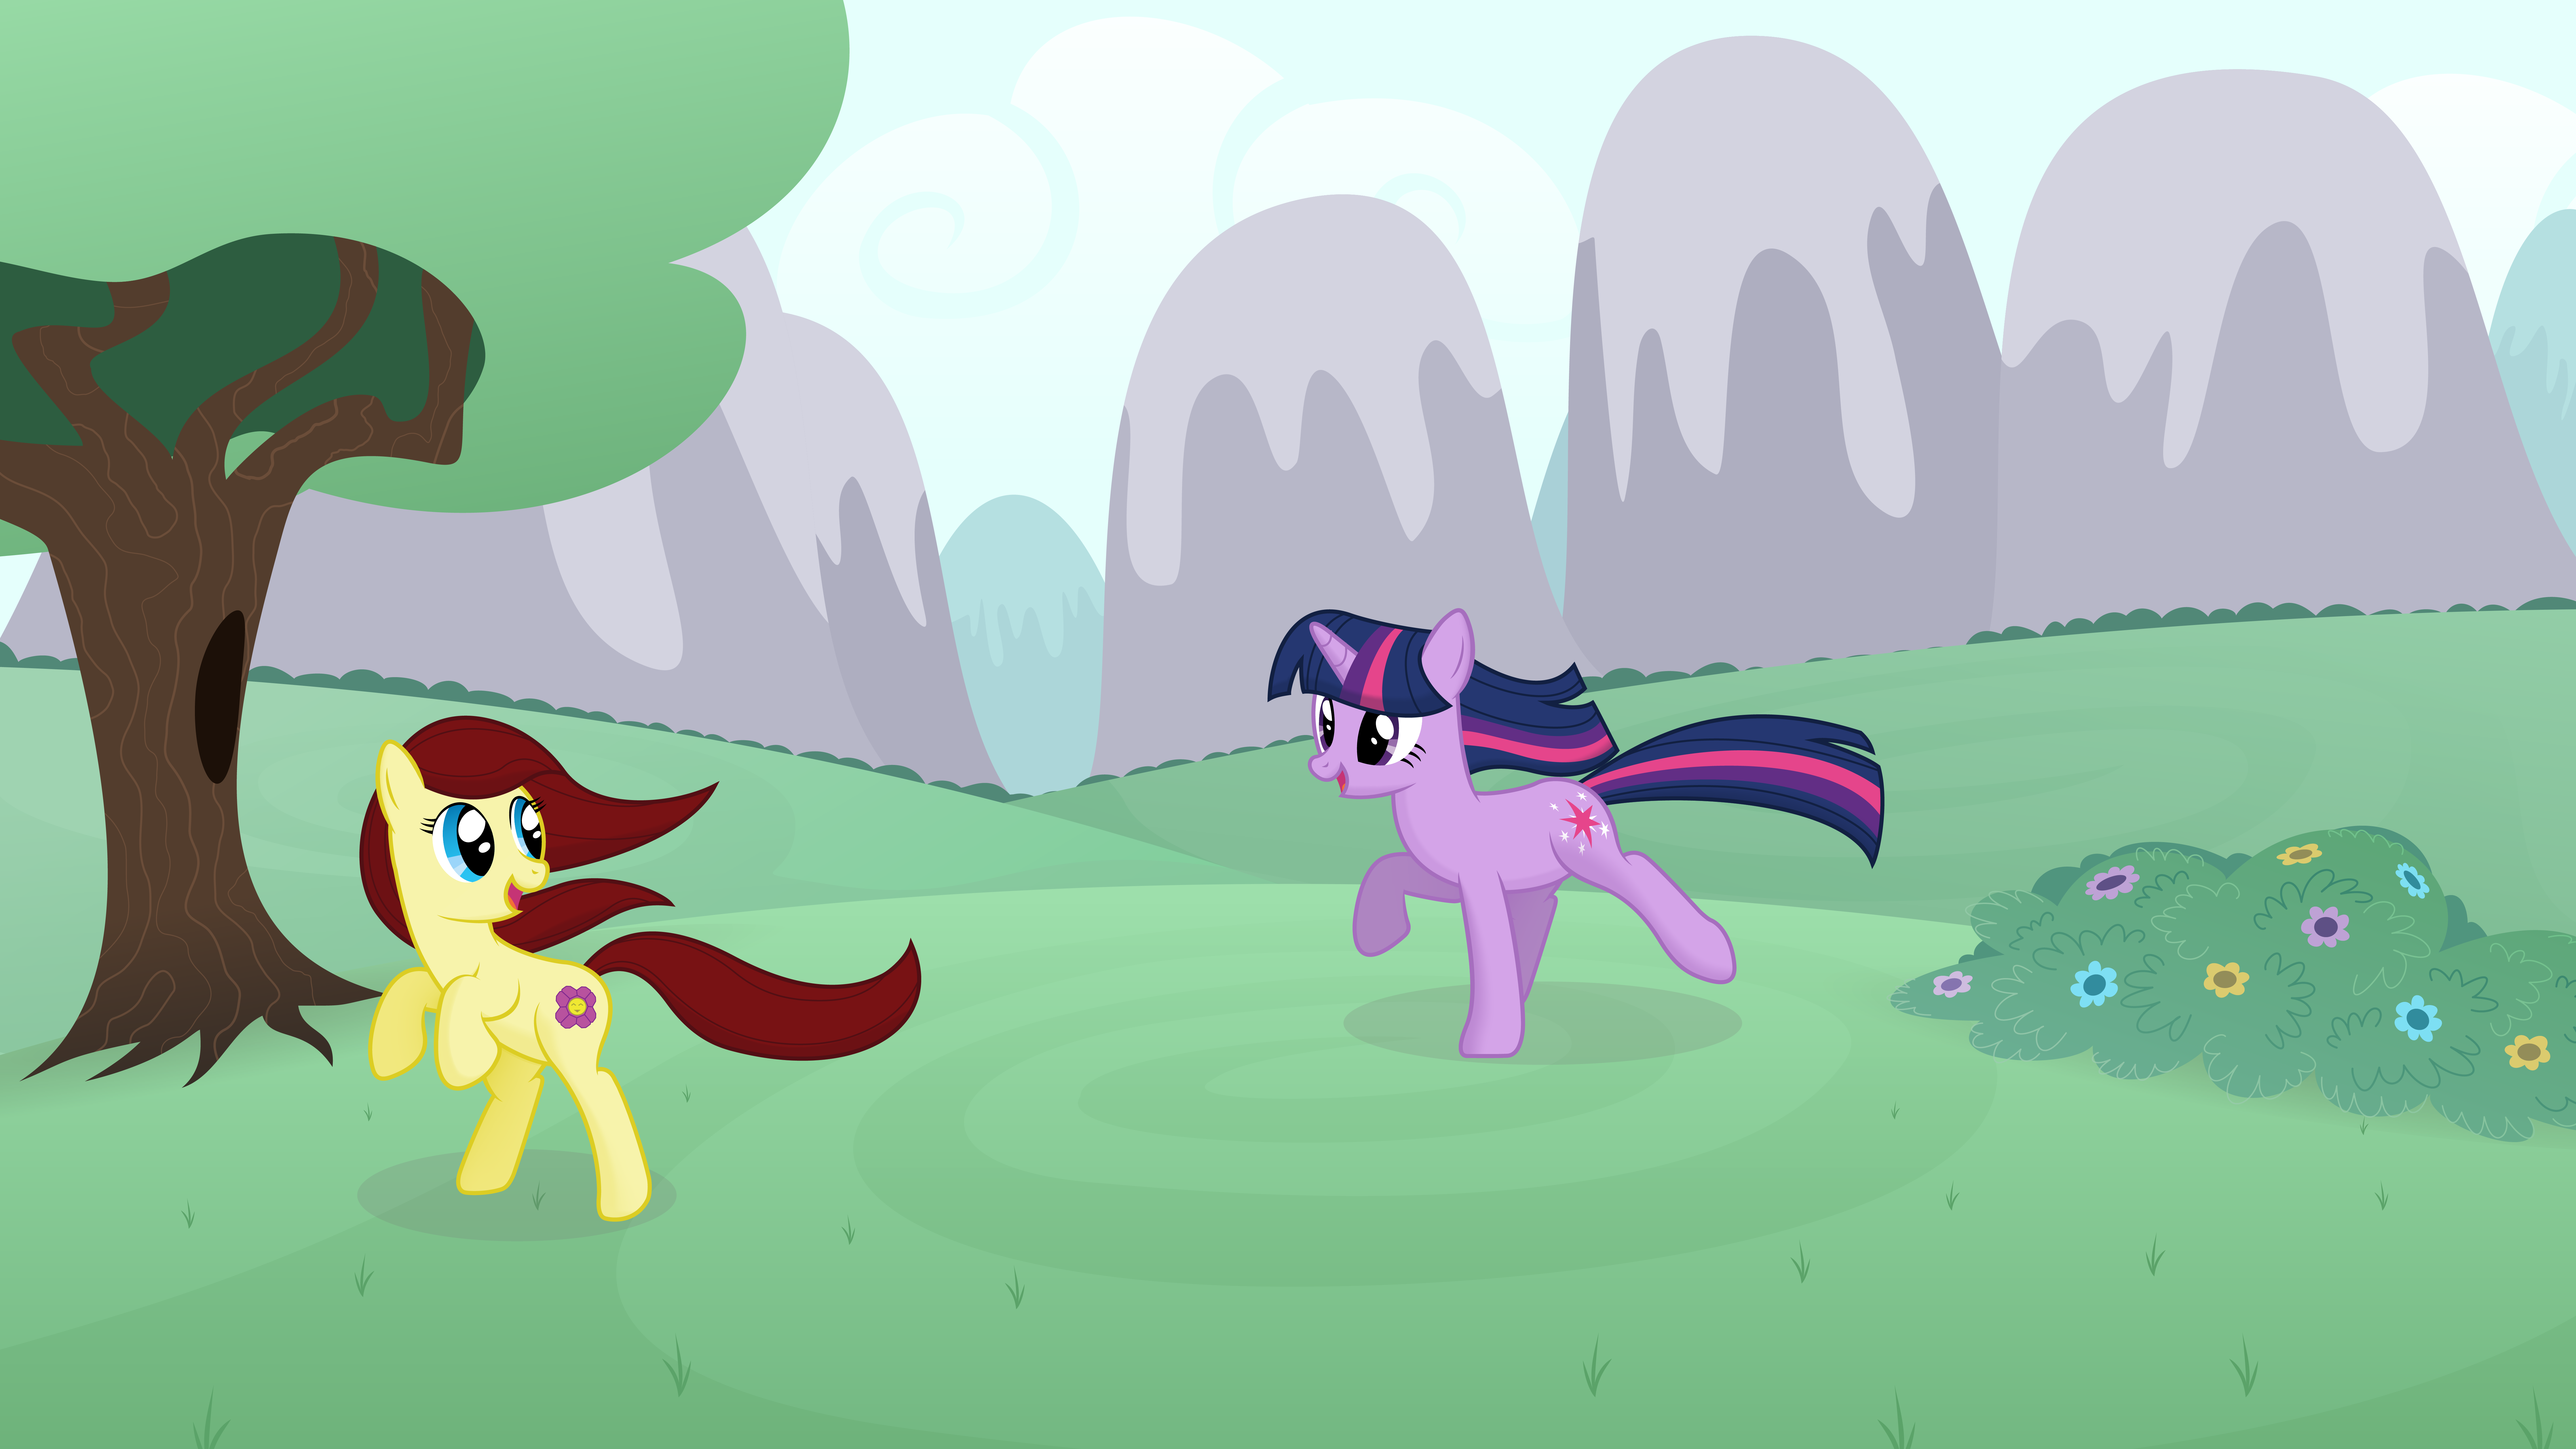 A Game of Tag by Kired25, SilverRainclouds and ZuTheSkunk